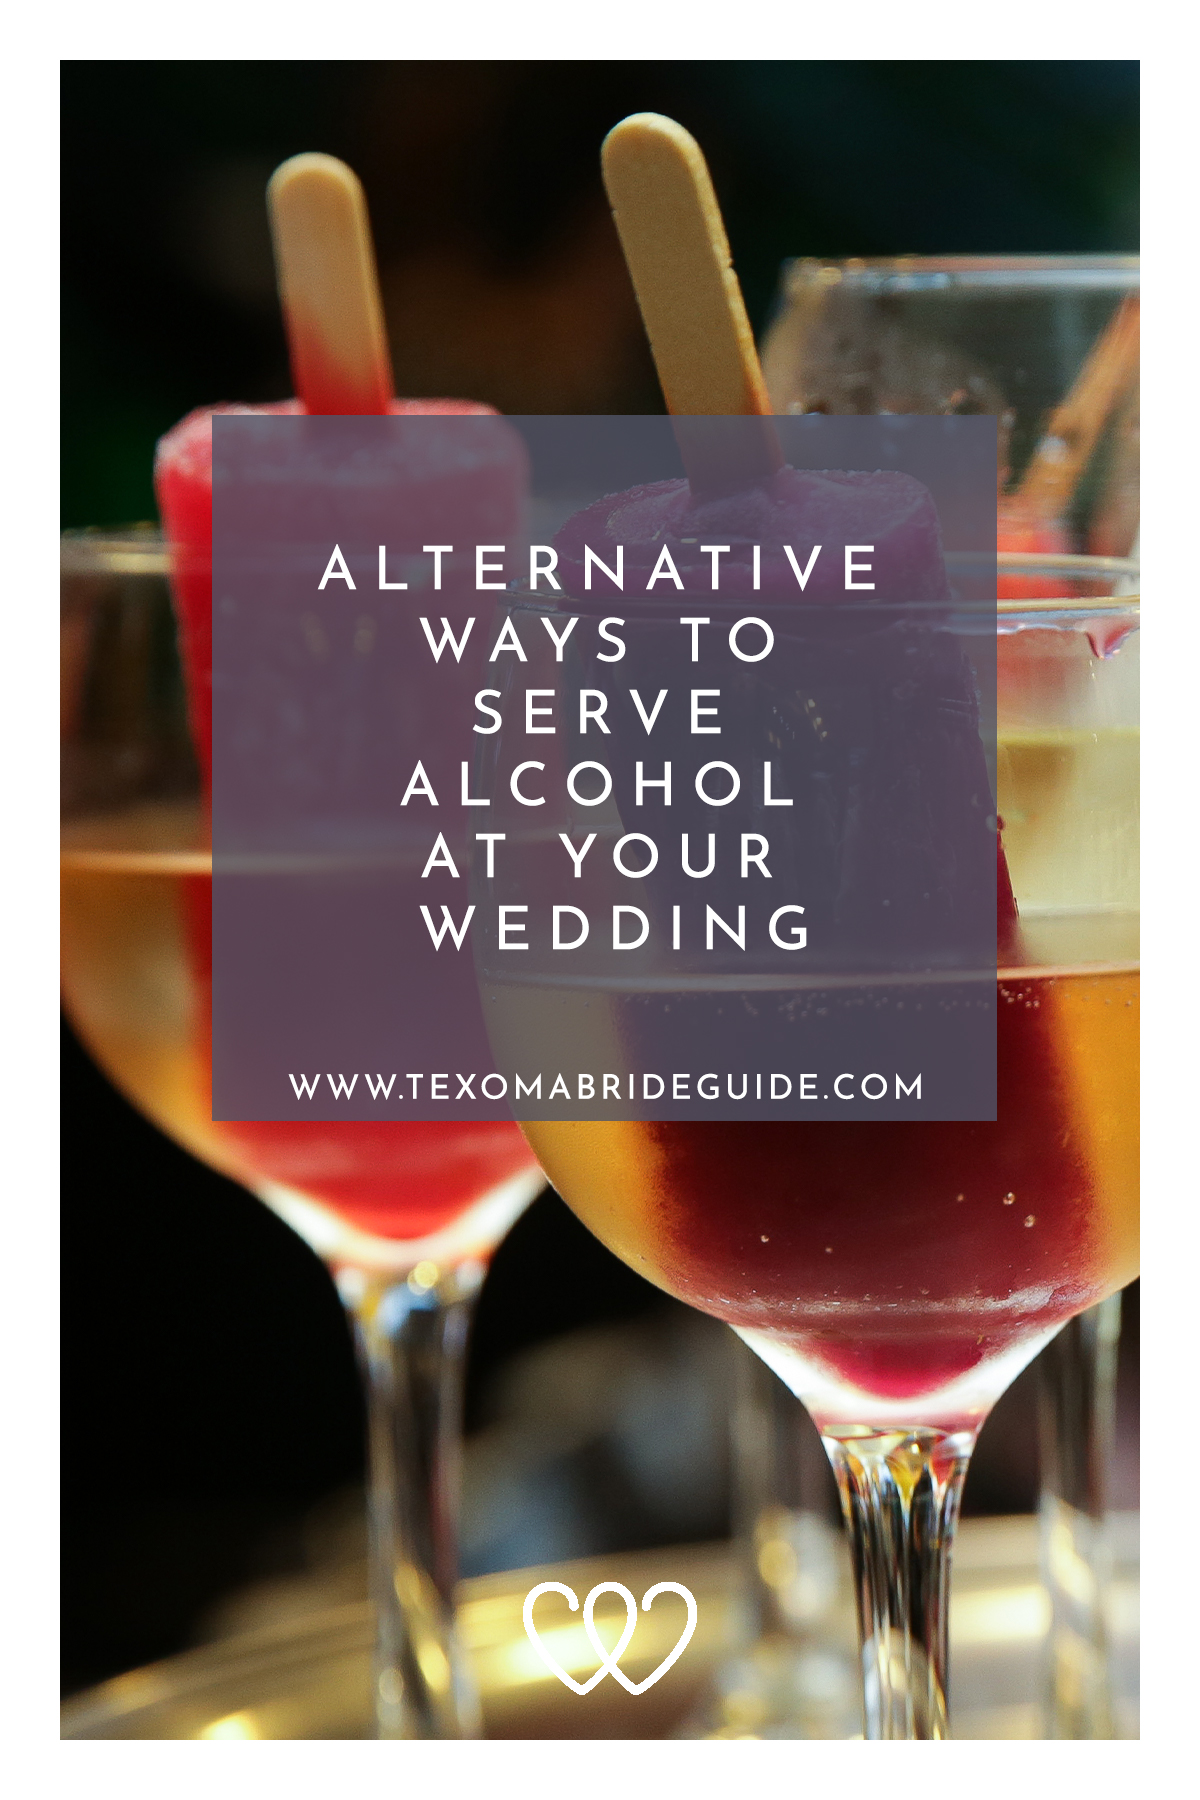 Alternative Ways To Serve Alcohol At Your Wedding | Texoma Bride Guide Blog